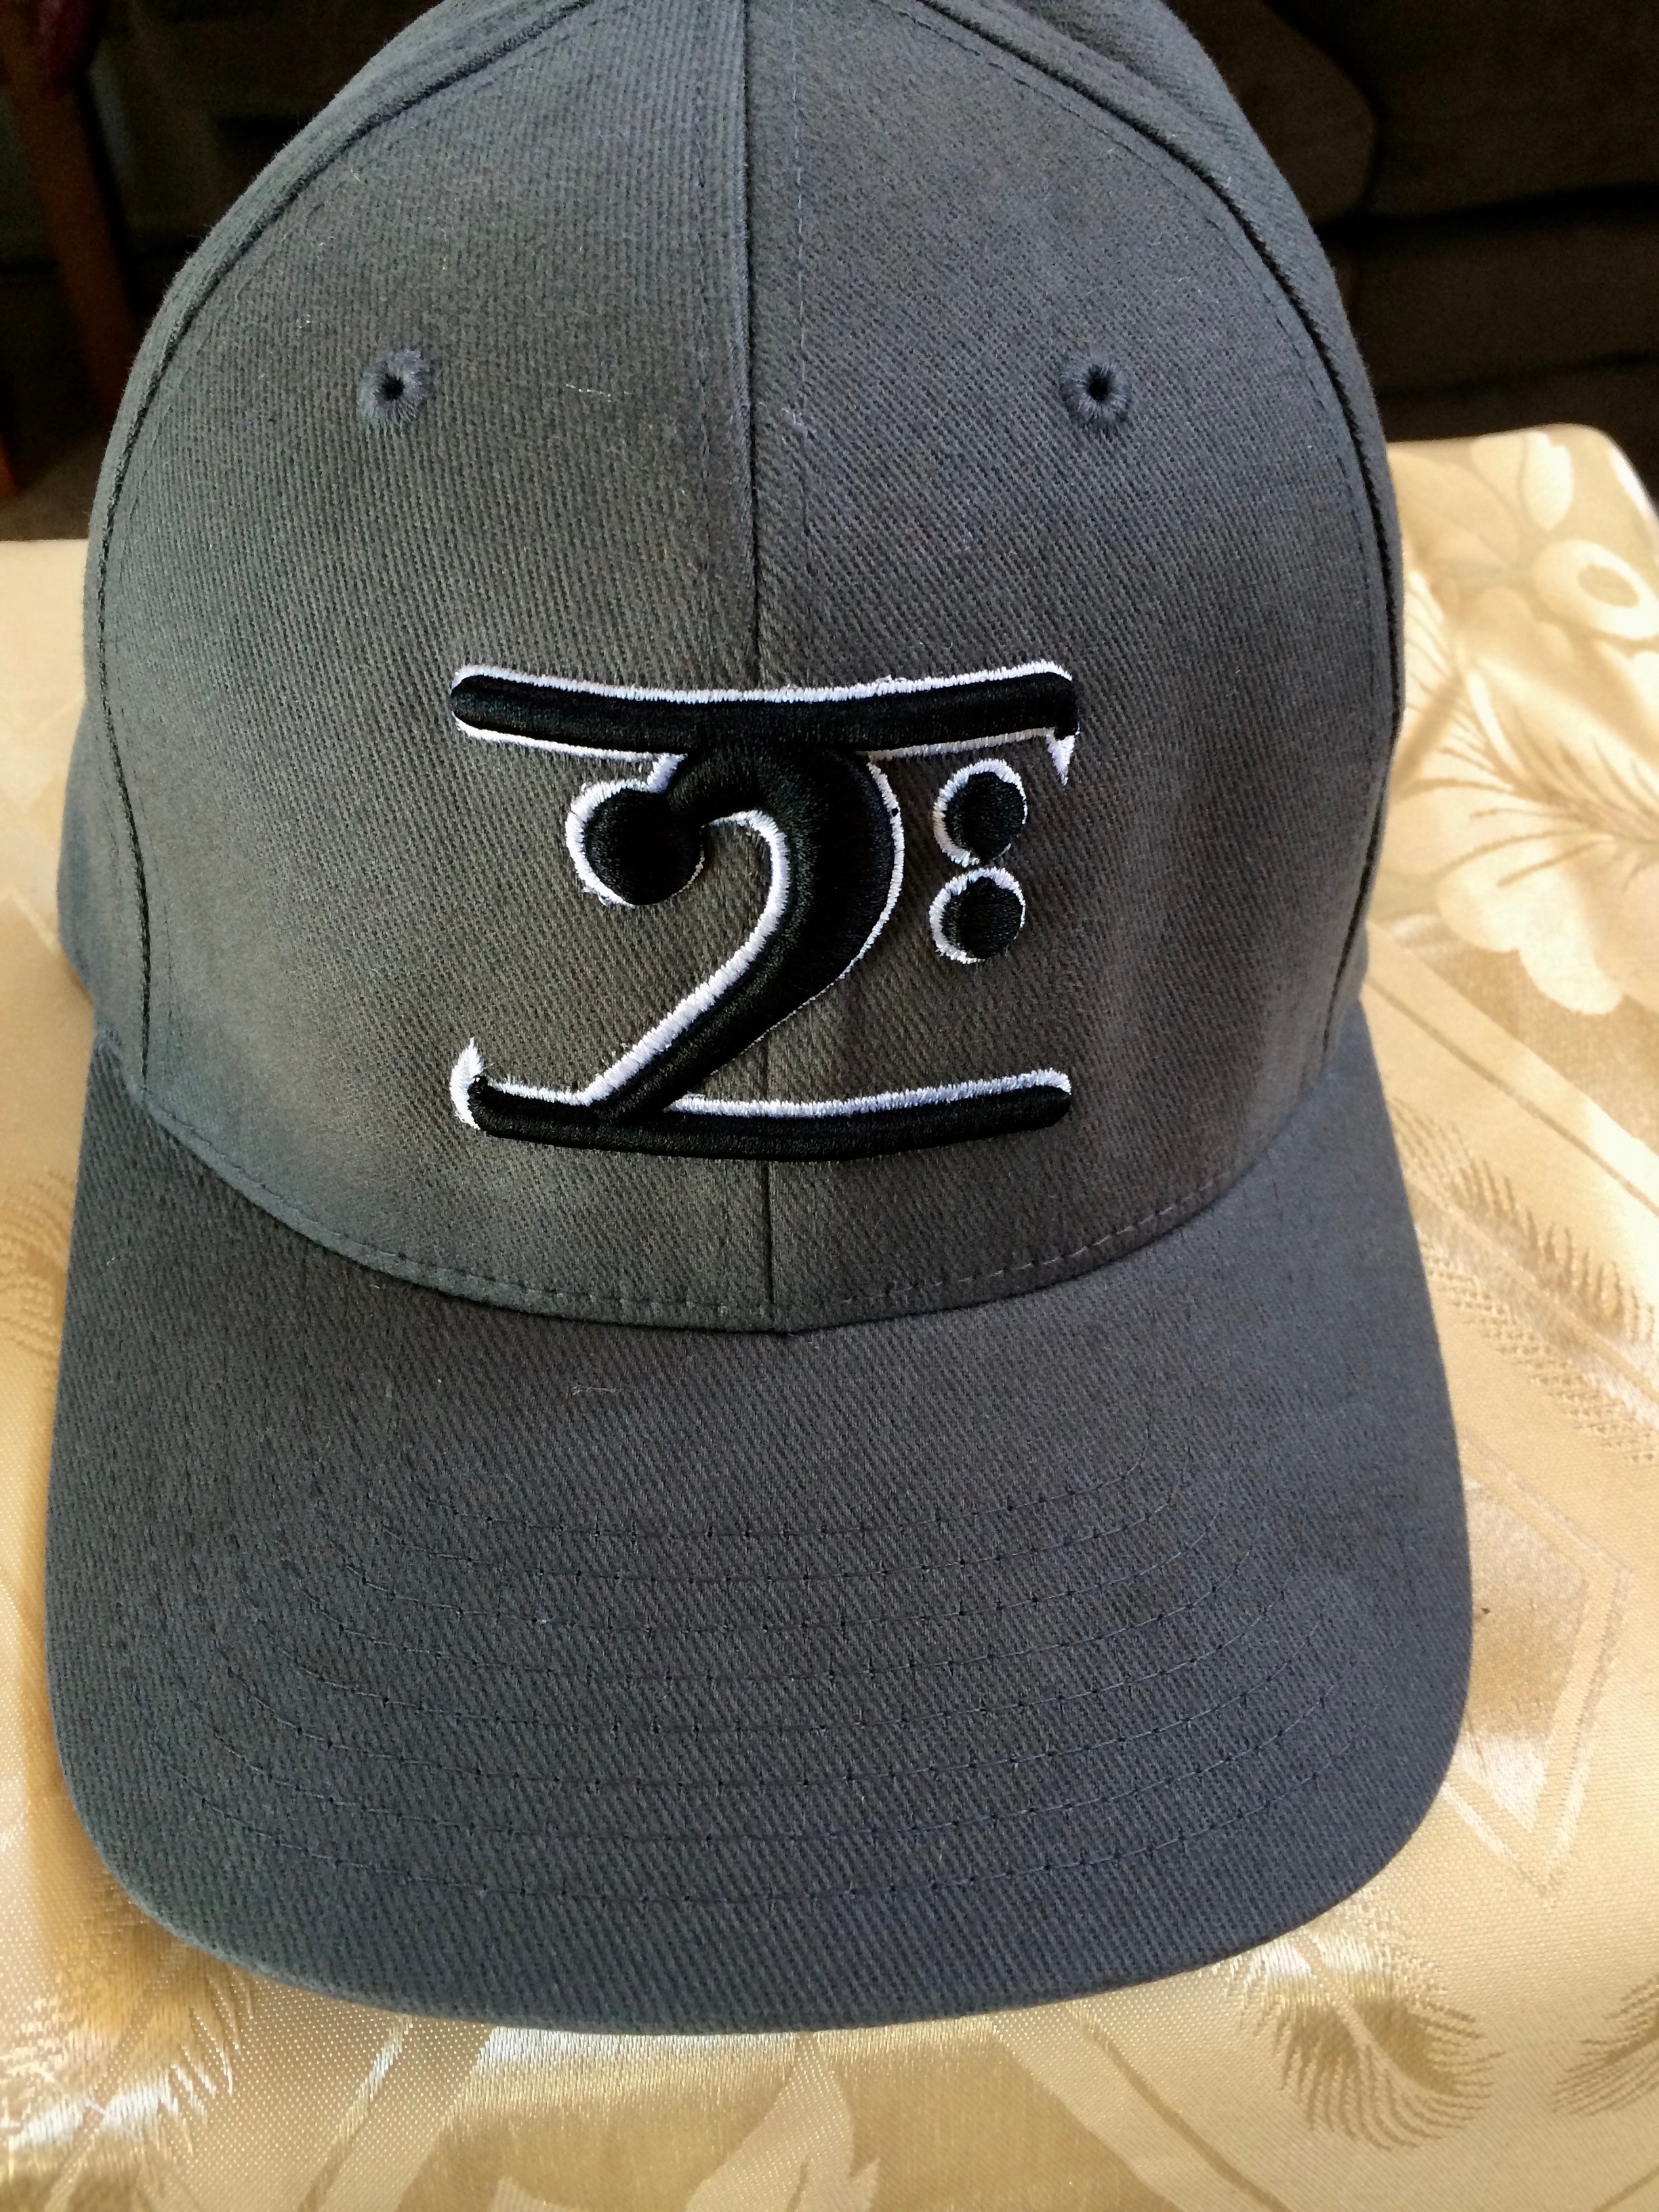 DARK GREY LOGO CAP - BLACK LOGO WHITE TRIM - Lathon Bass Wear